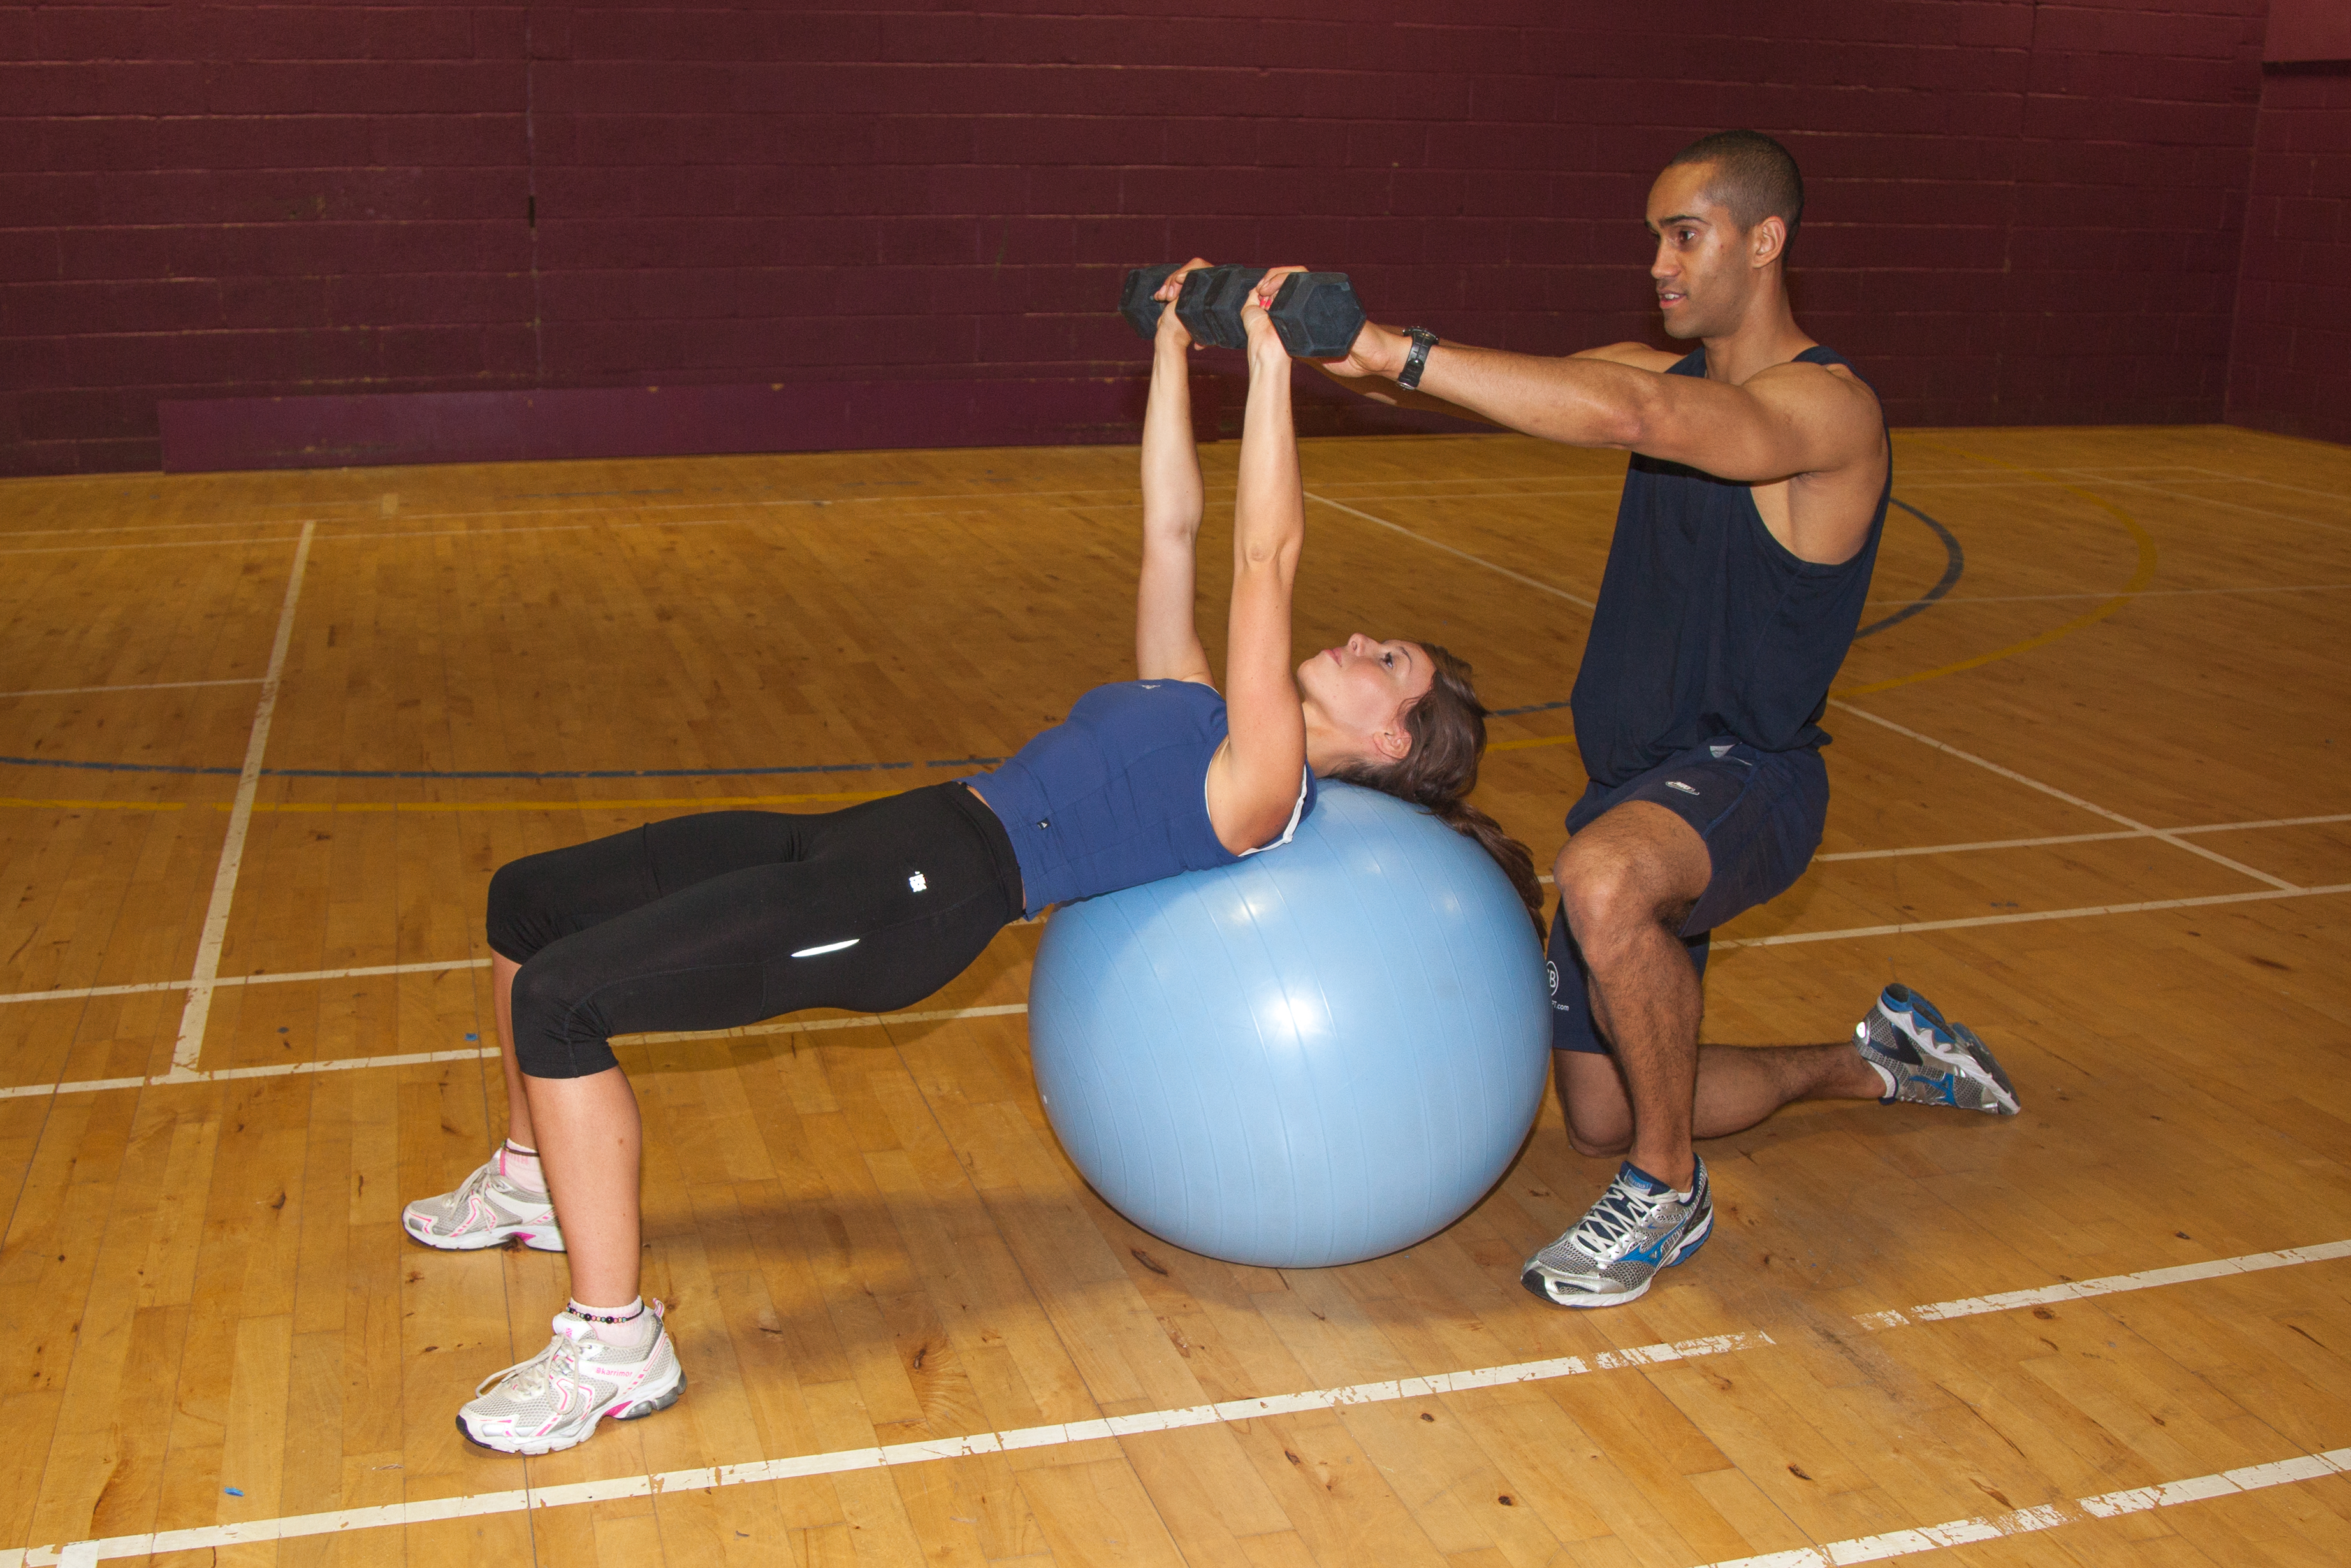 Personal training free session